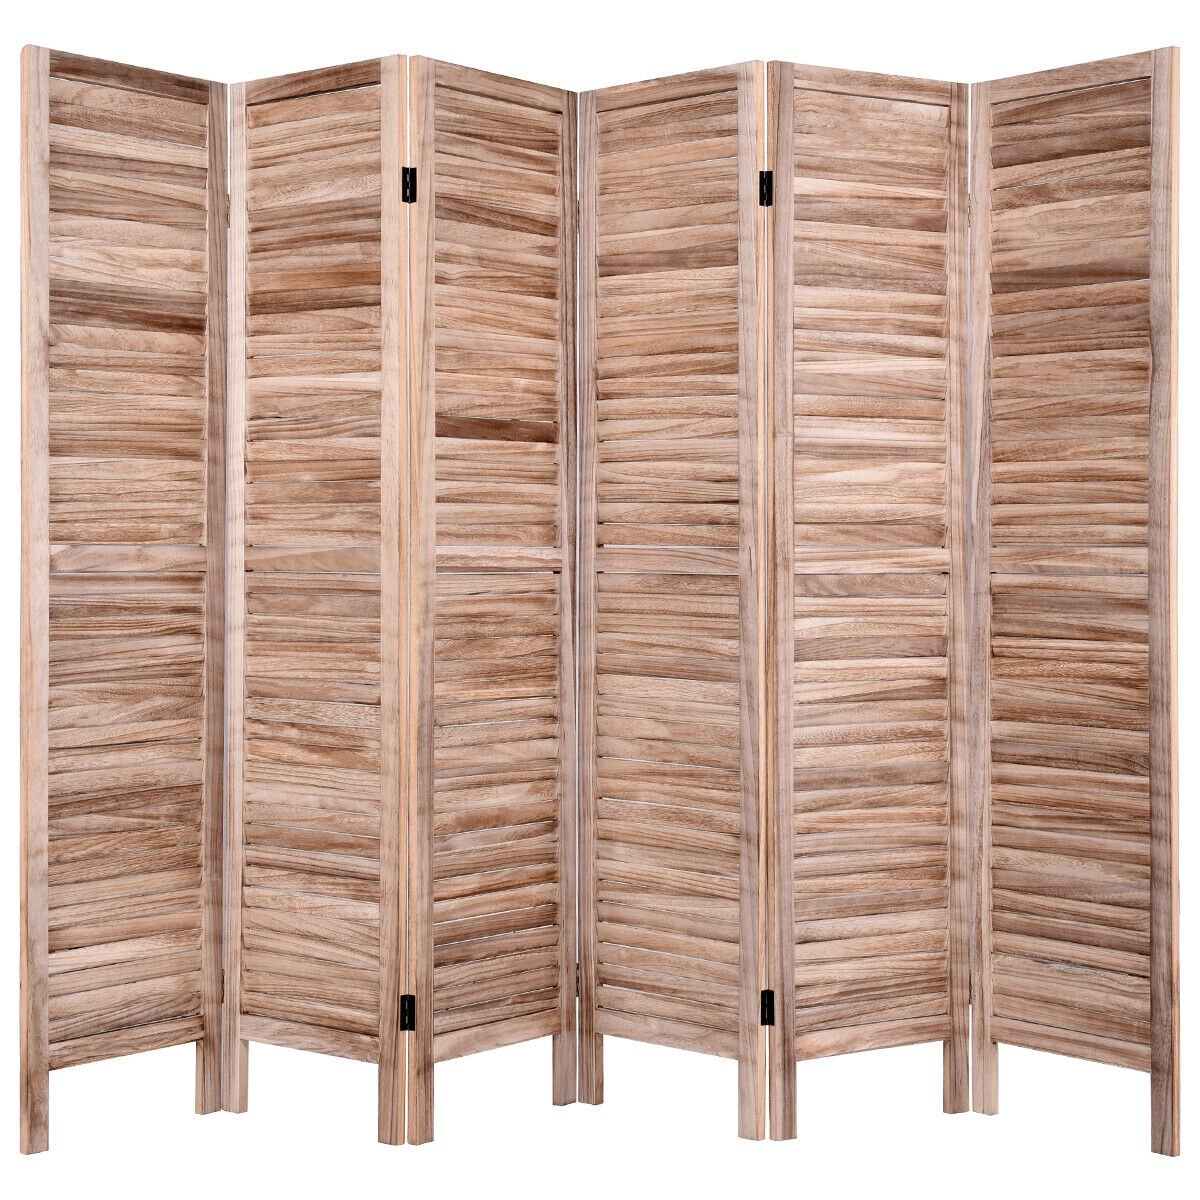 Super 67 H 6 Panel Room Divider Classic Venetian Wooden Slat Home Furniture Brown Download Free Architecture Designs Embacsunscenecom